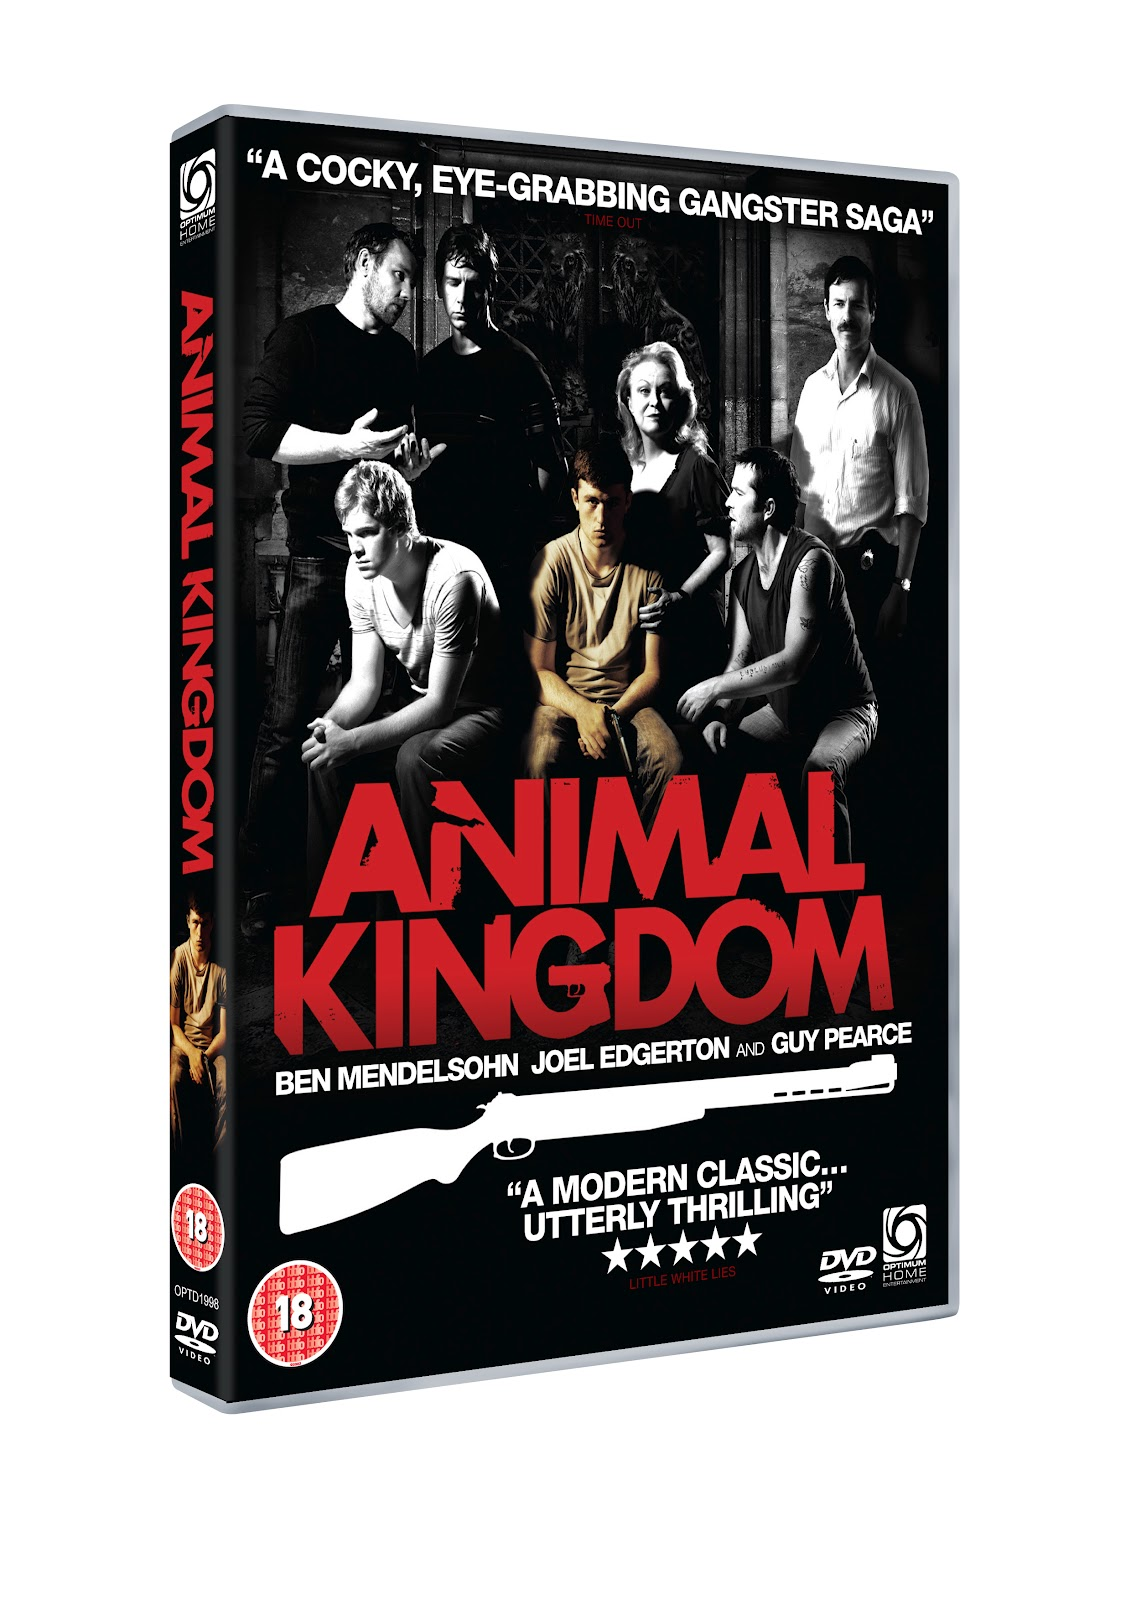 animal-kingdom-movie-dvd-case-box